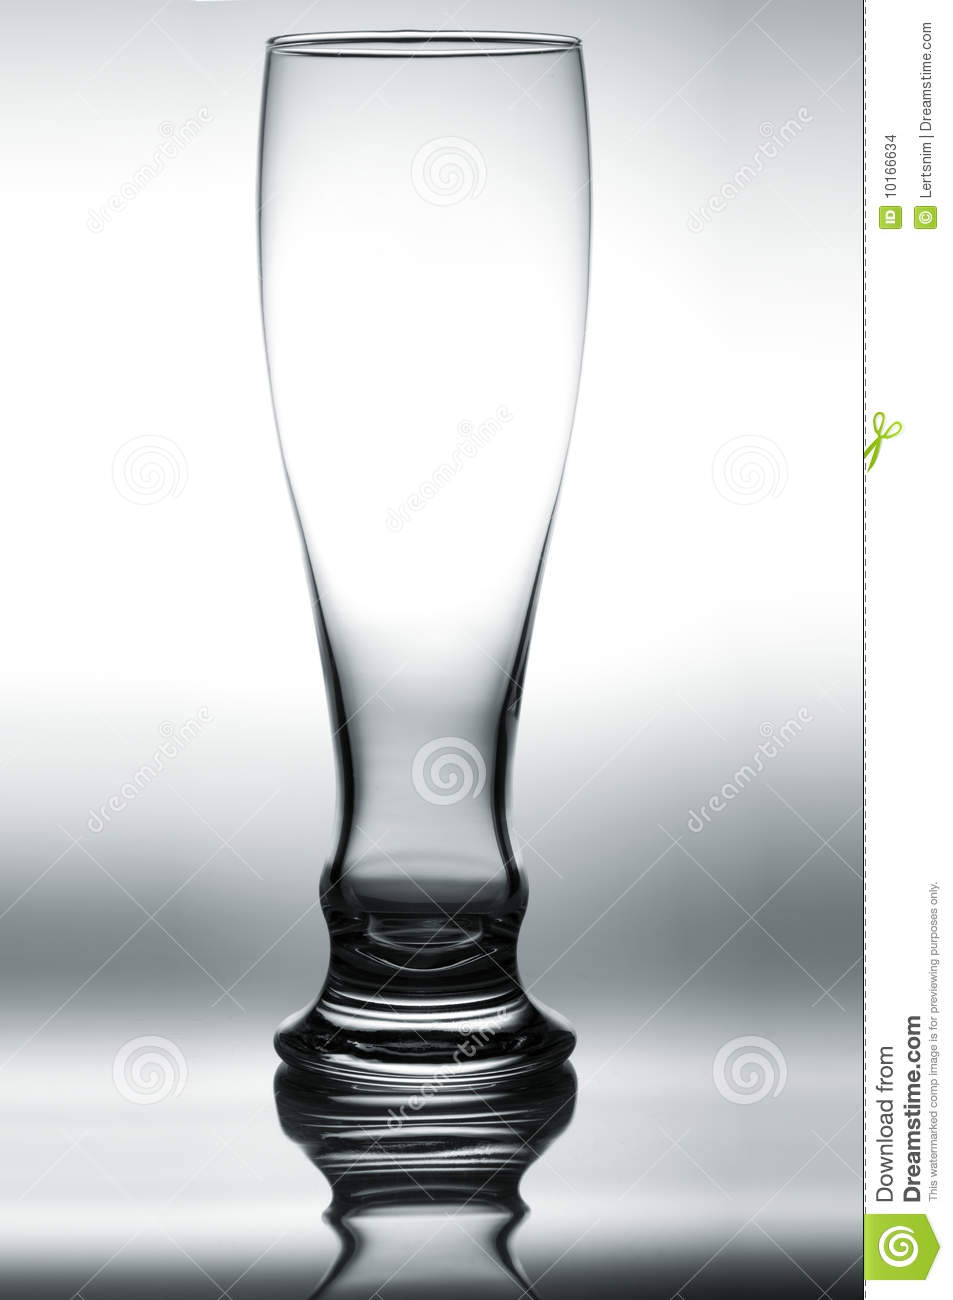 Empty glass of beer